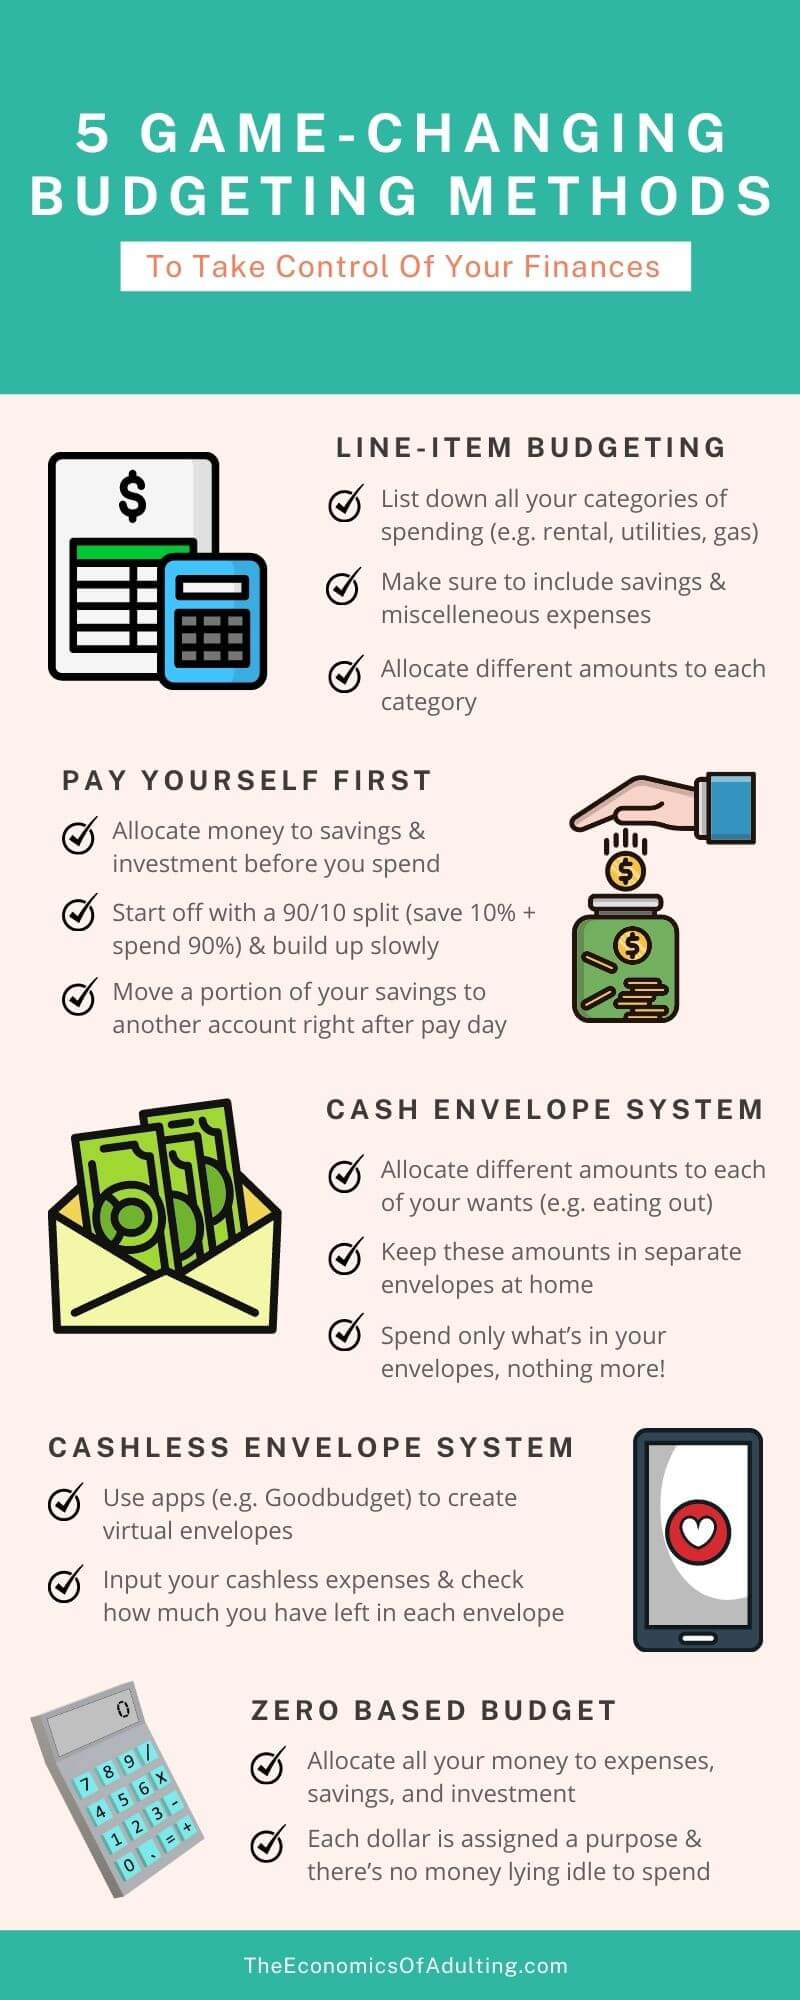 An infographic about different budgeting methods